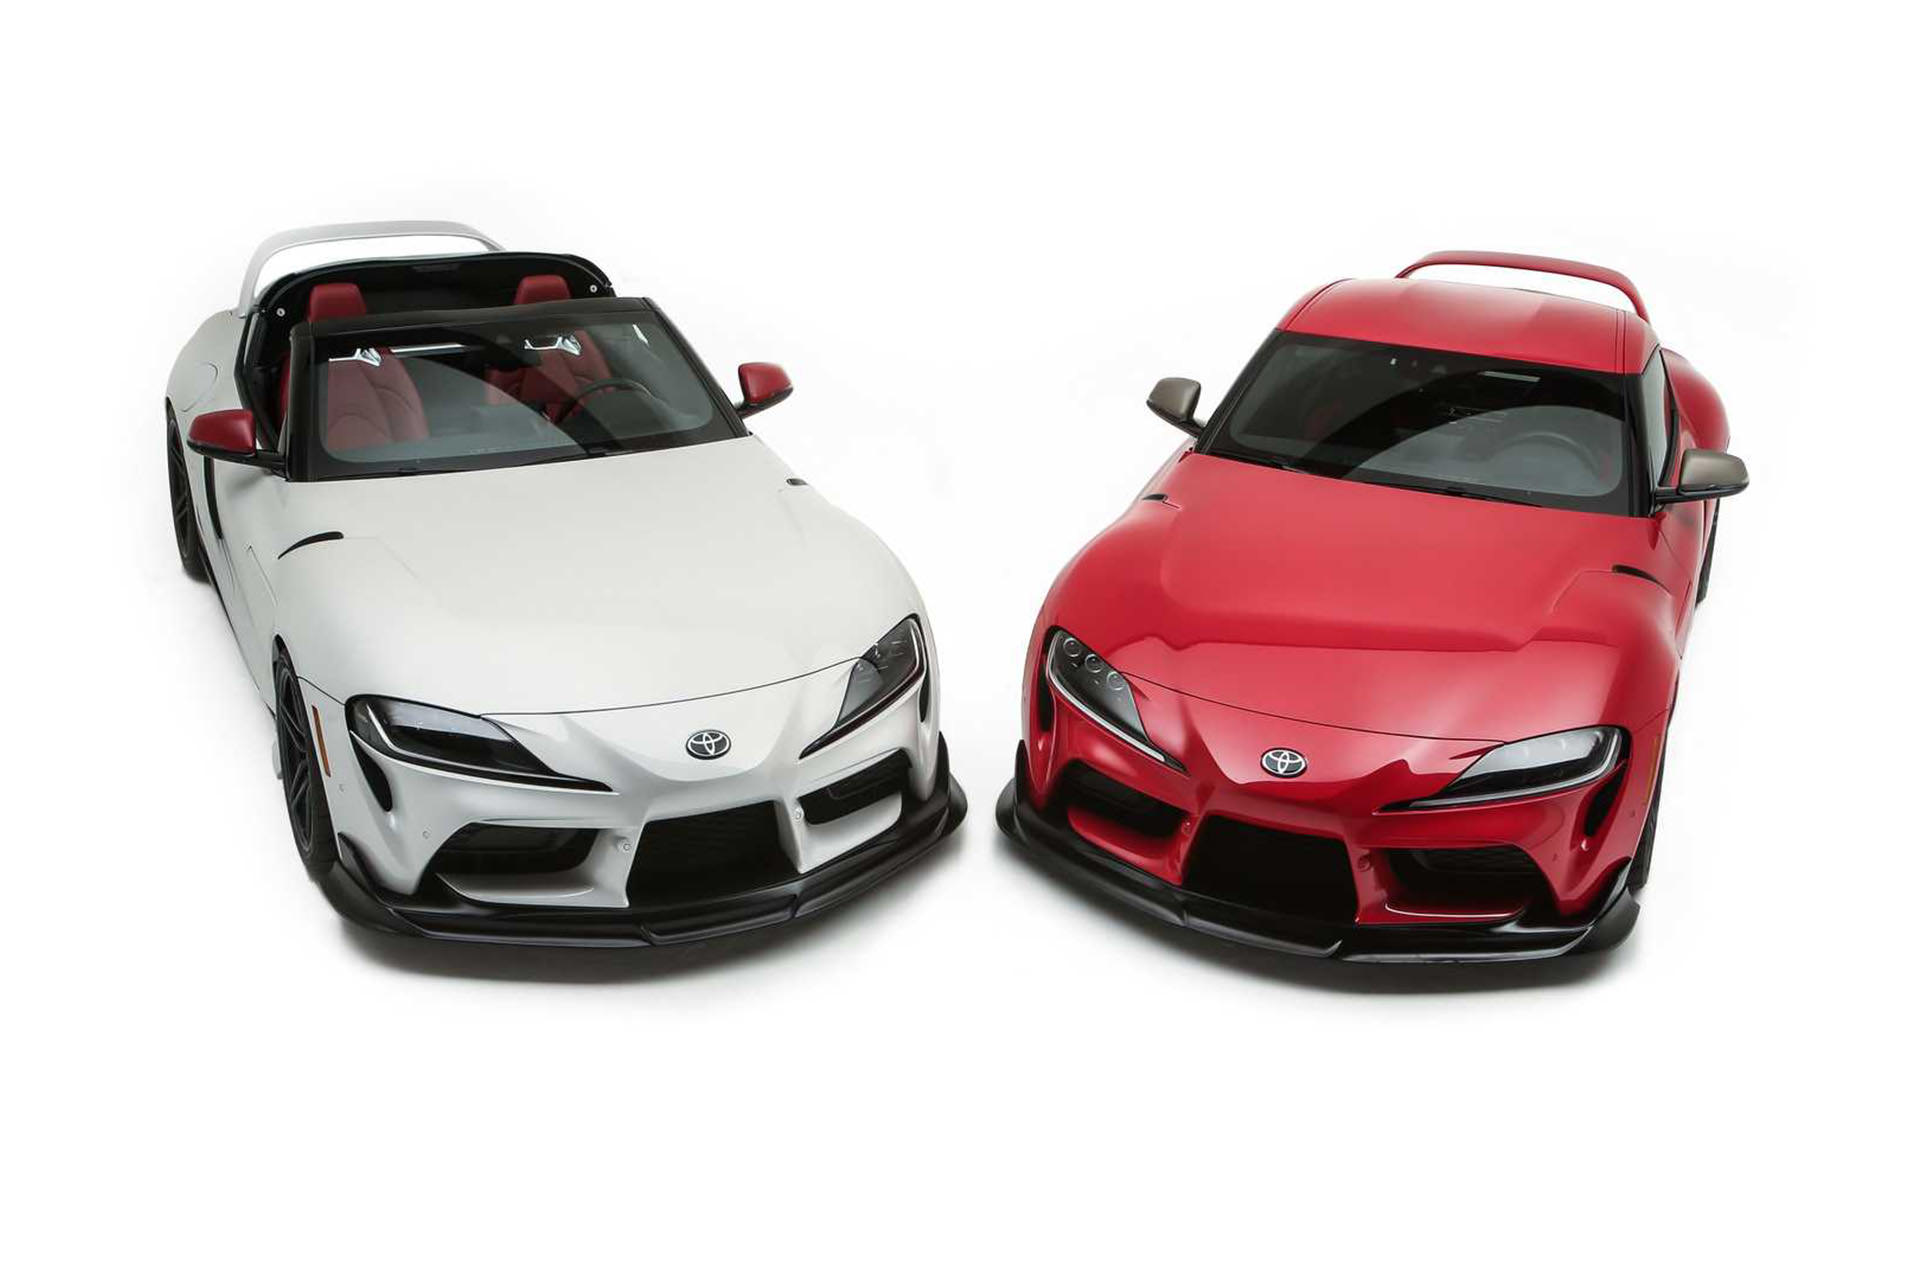 Toyota GR Supra Sport Top concept car / Toyota GR Supra Sport Top white with red version of Heritage